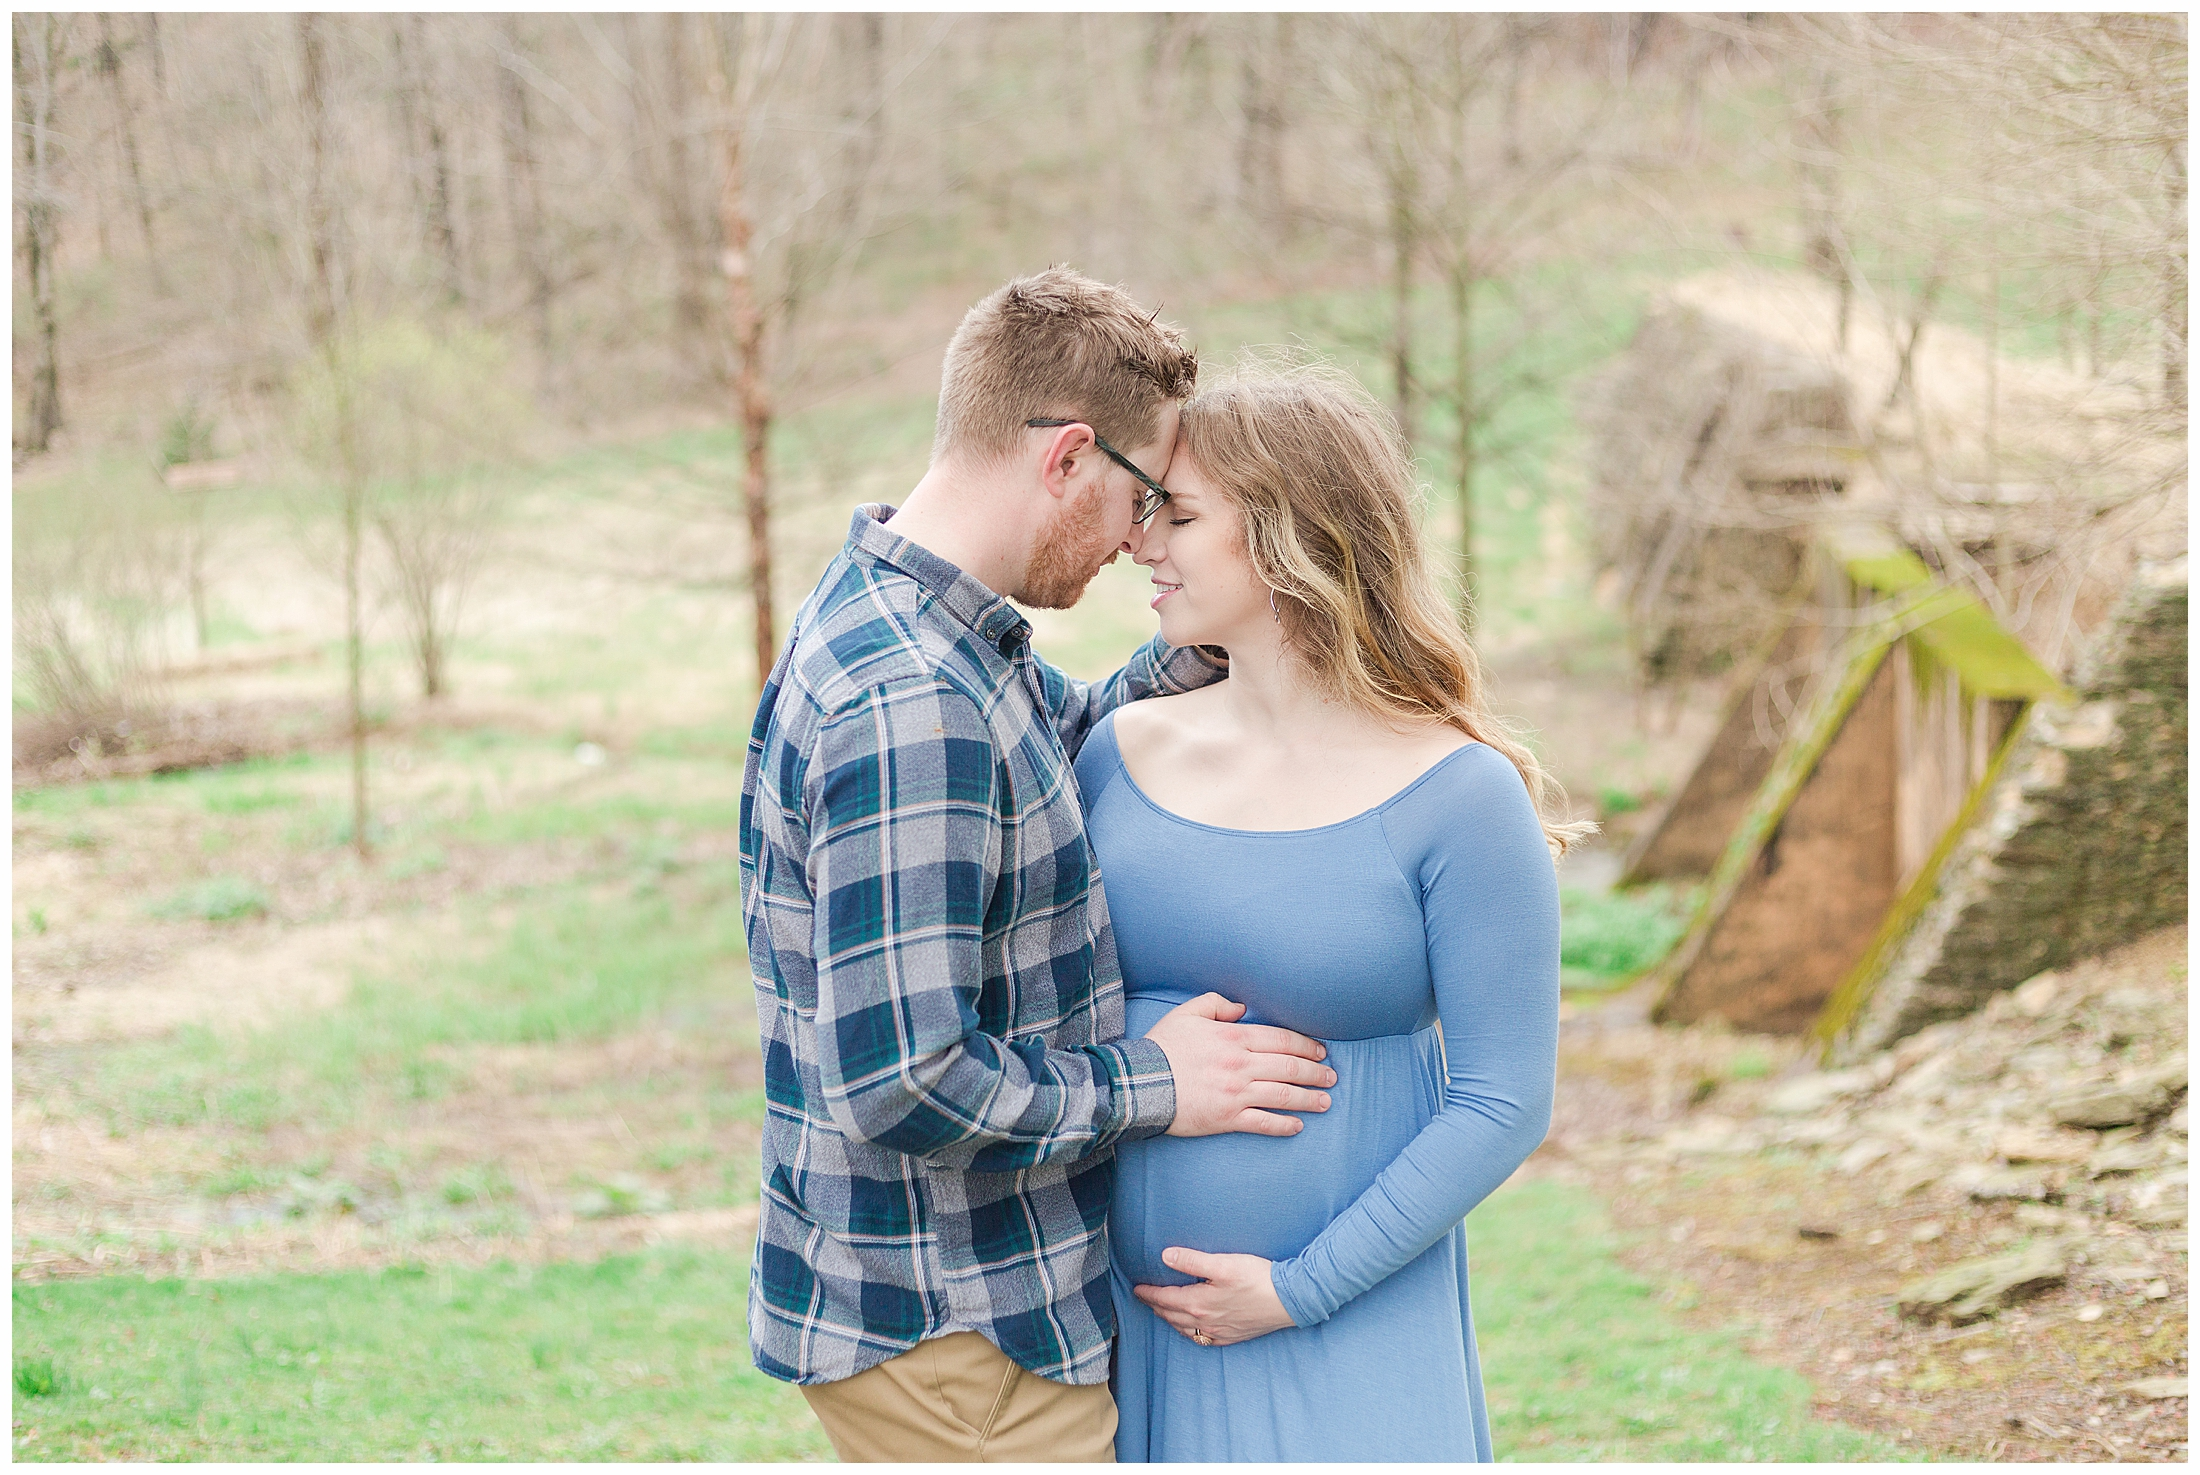 chester-county-maternity-photographer_0015.jpg